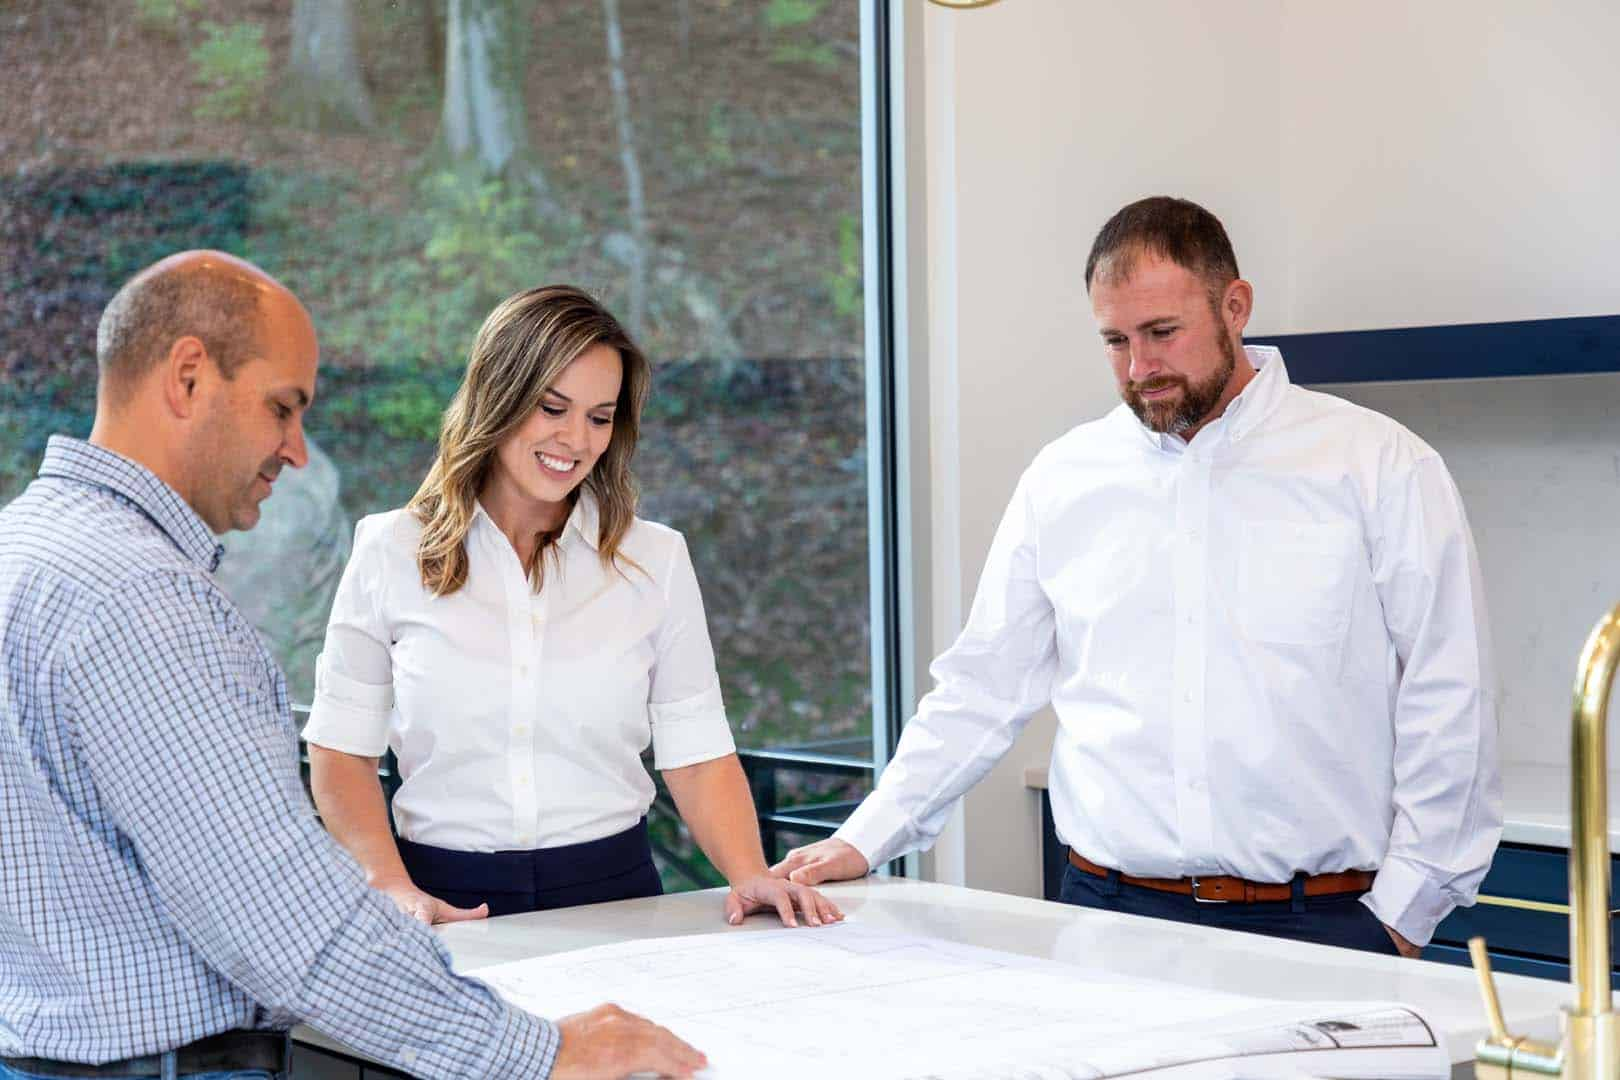 The owners of Bio Plumbing looking at a blueprint with a client